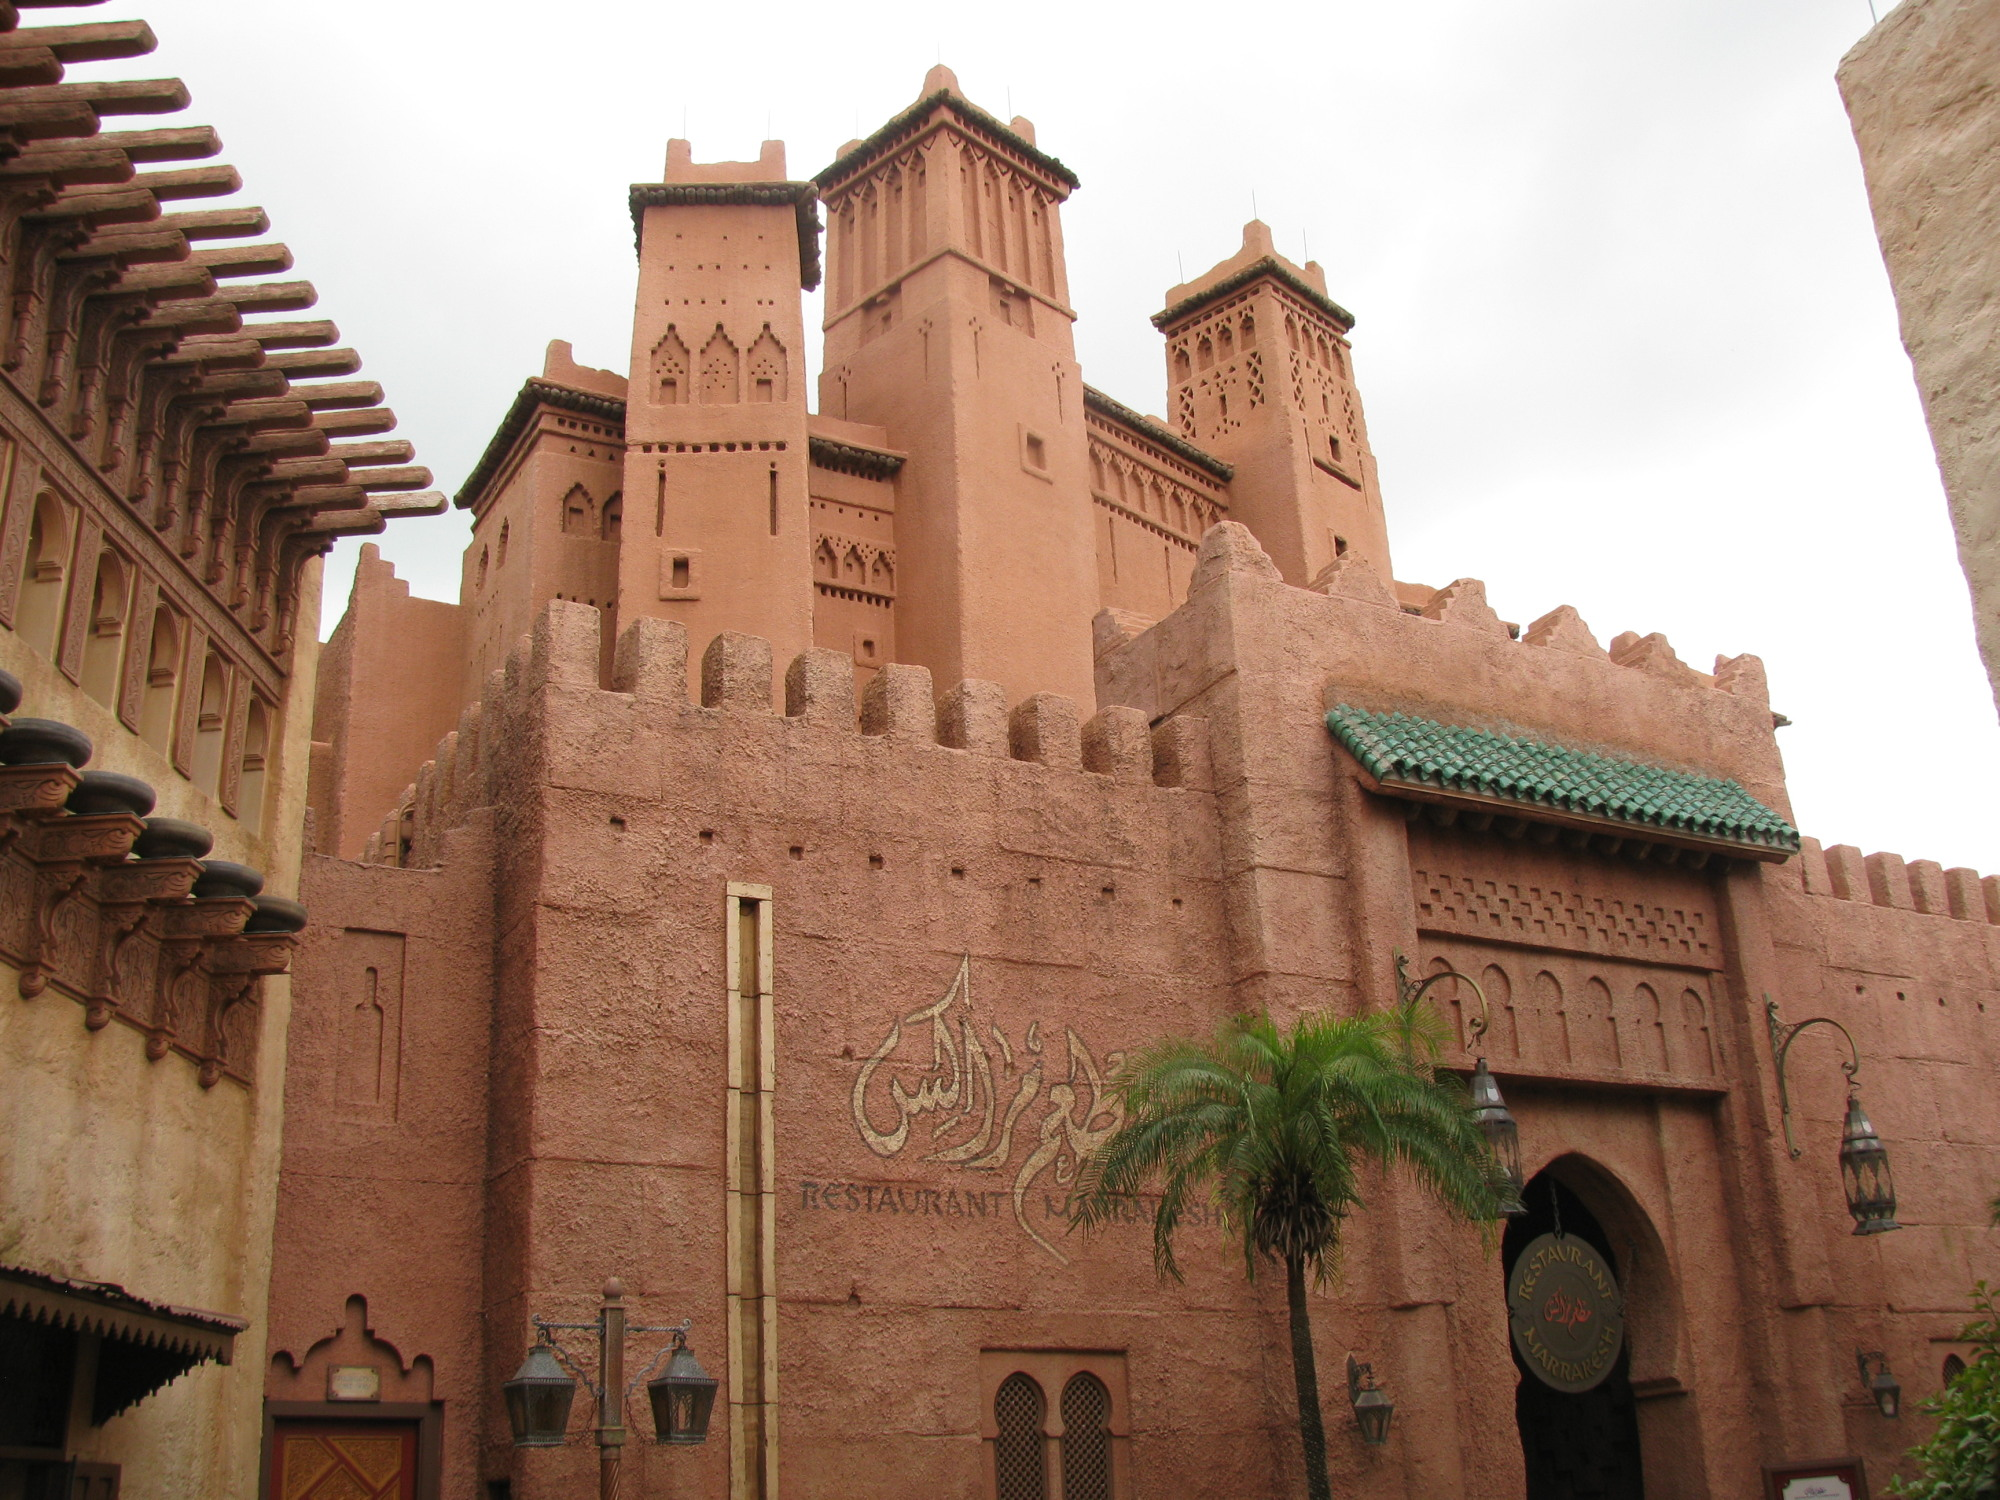 Explore a hidden dining gem in the Morocco pavilion at Epcot | PassPorter.com